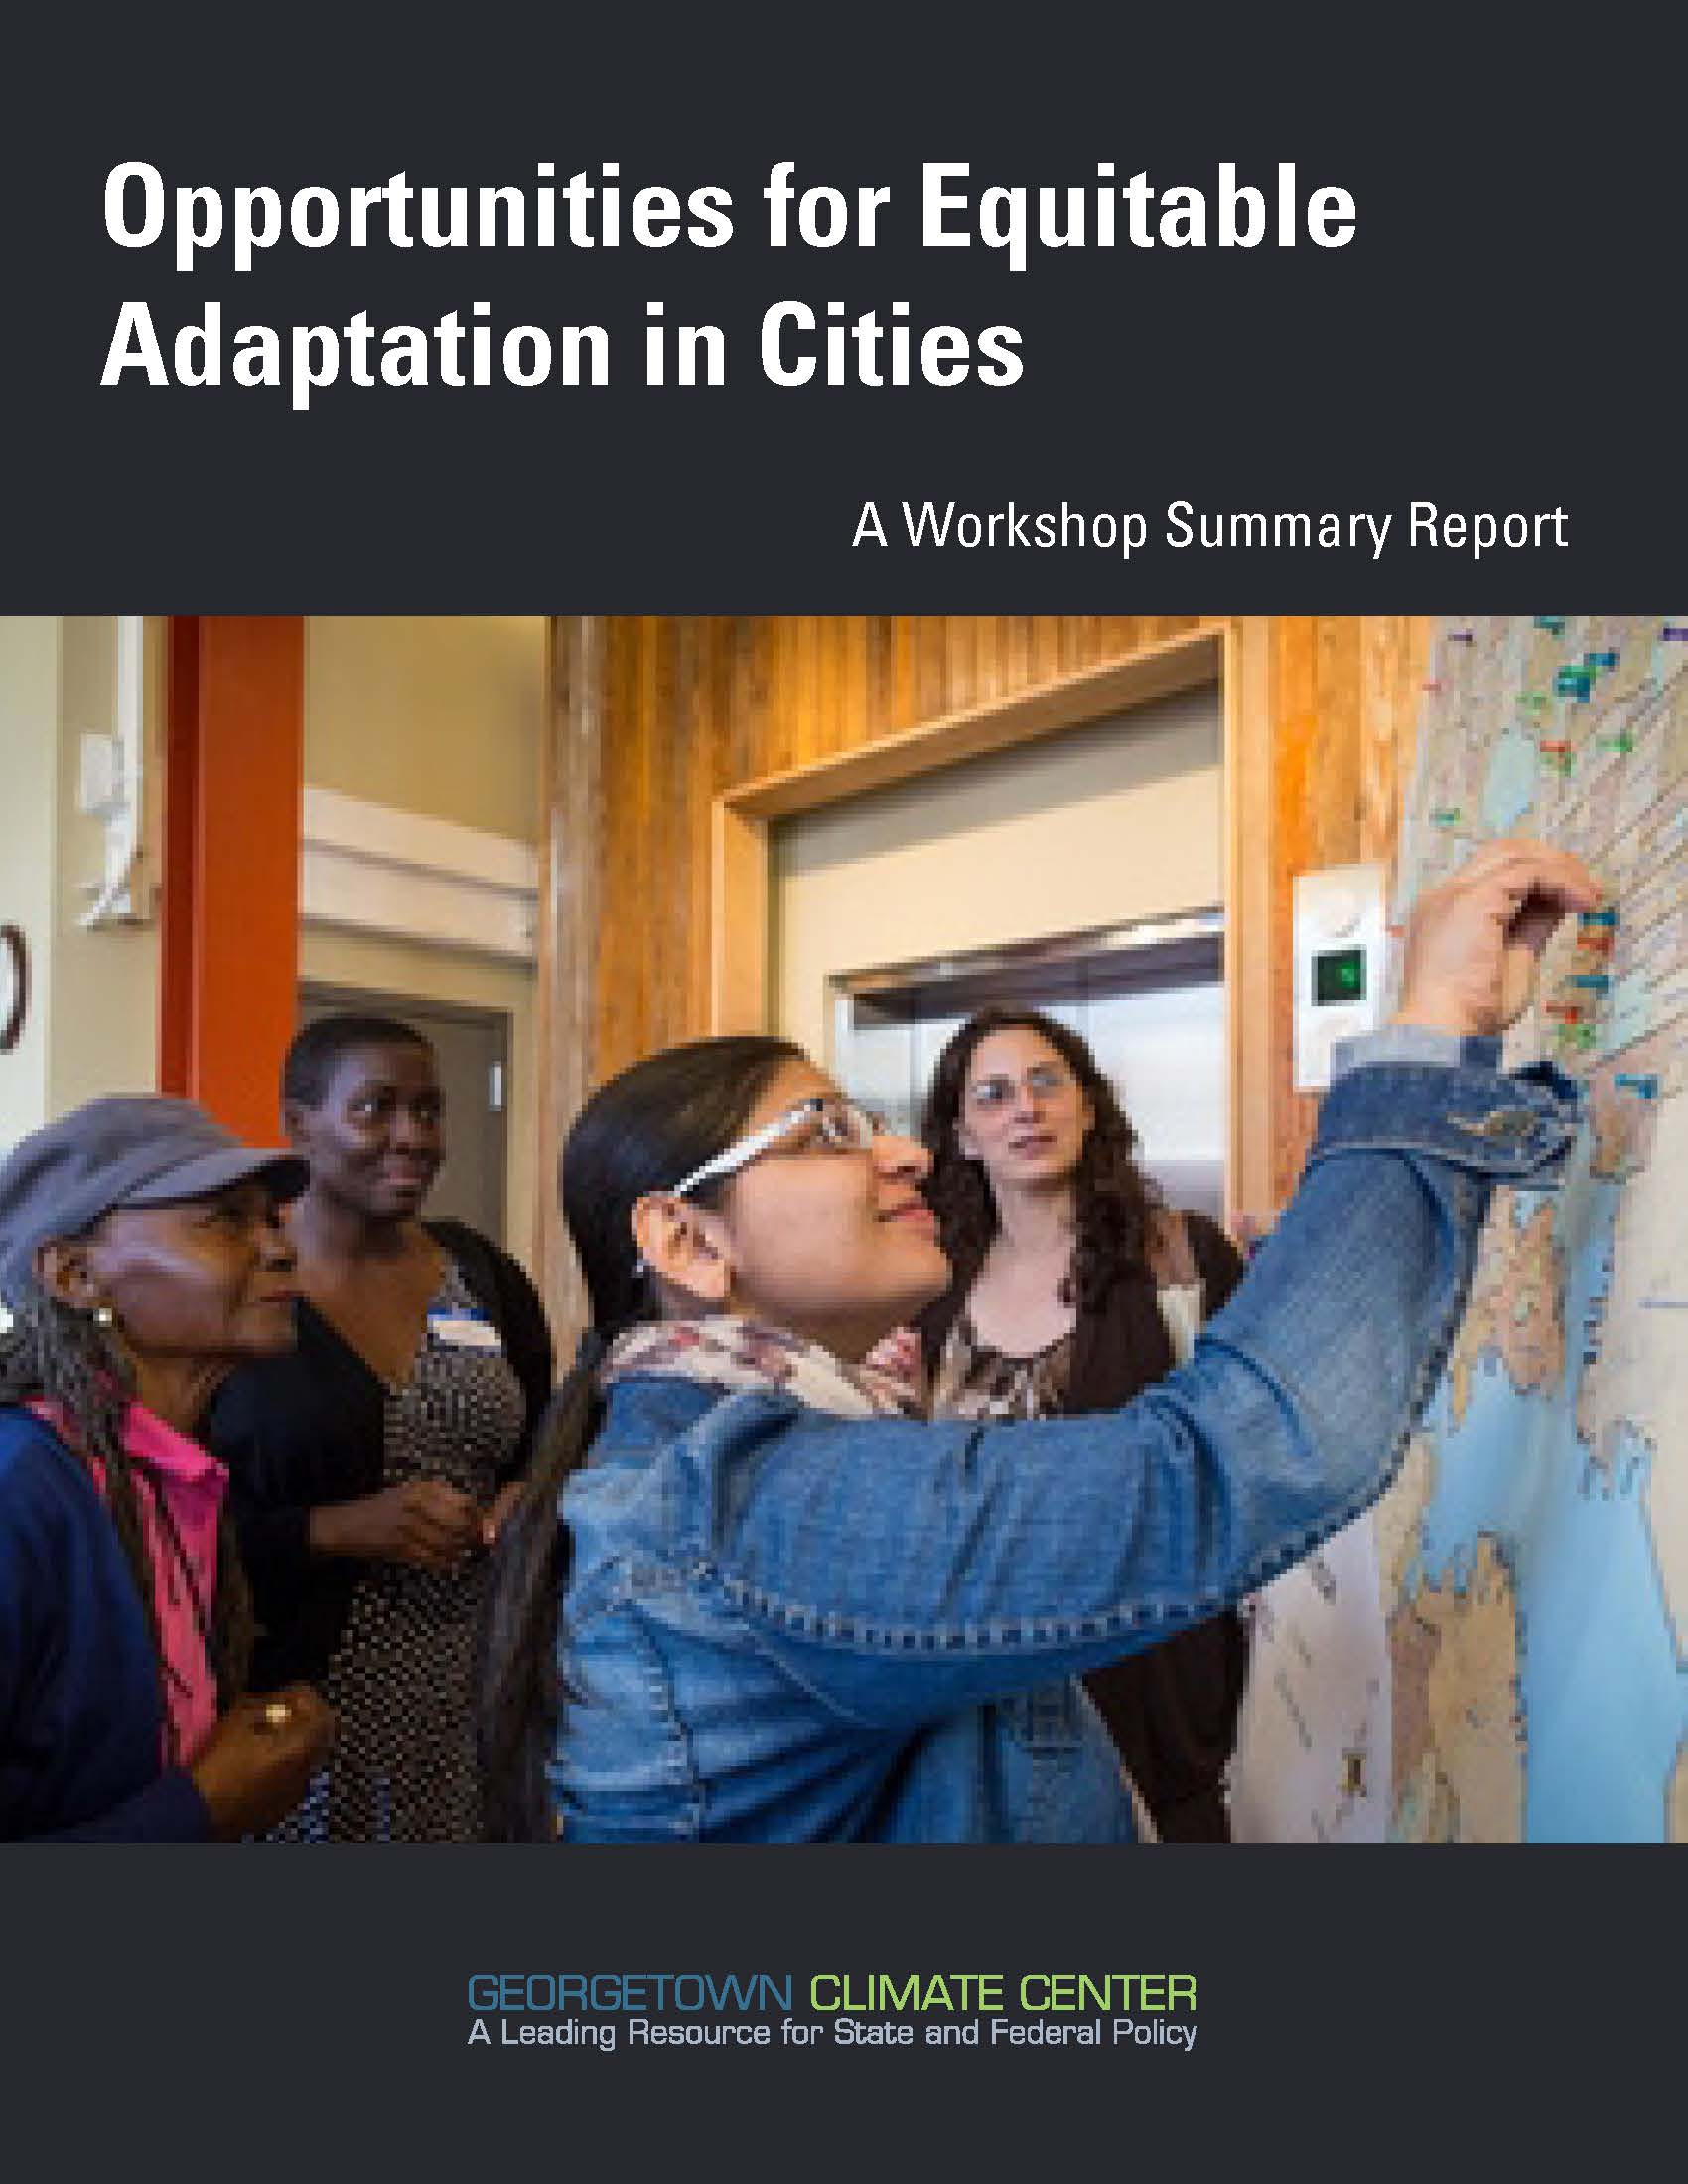 Opportunities for Equitable Adaptation in Cities